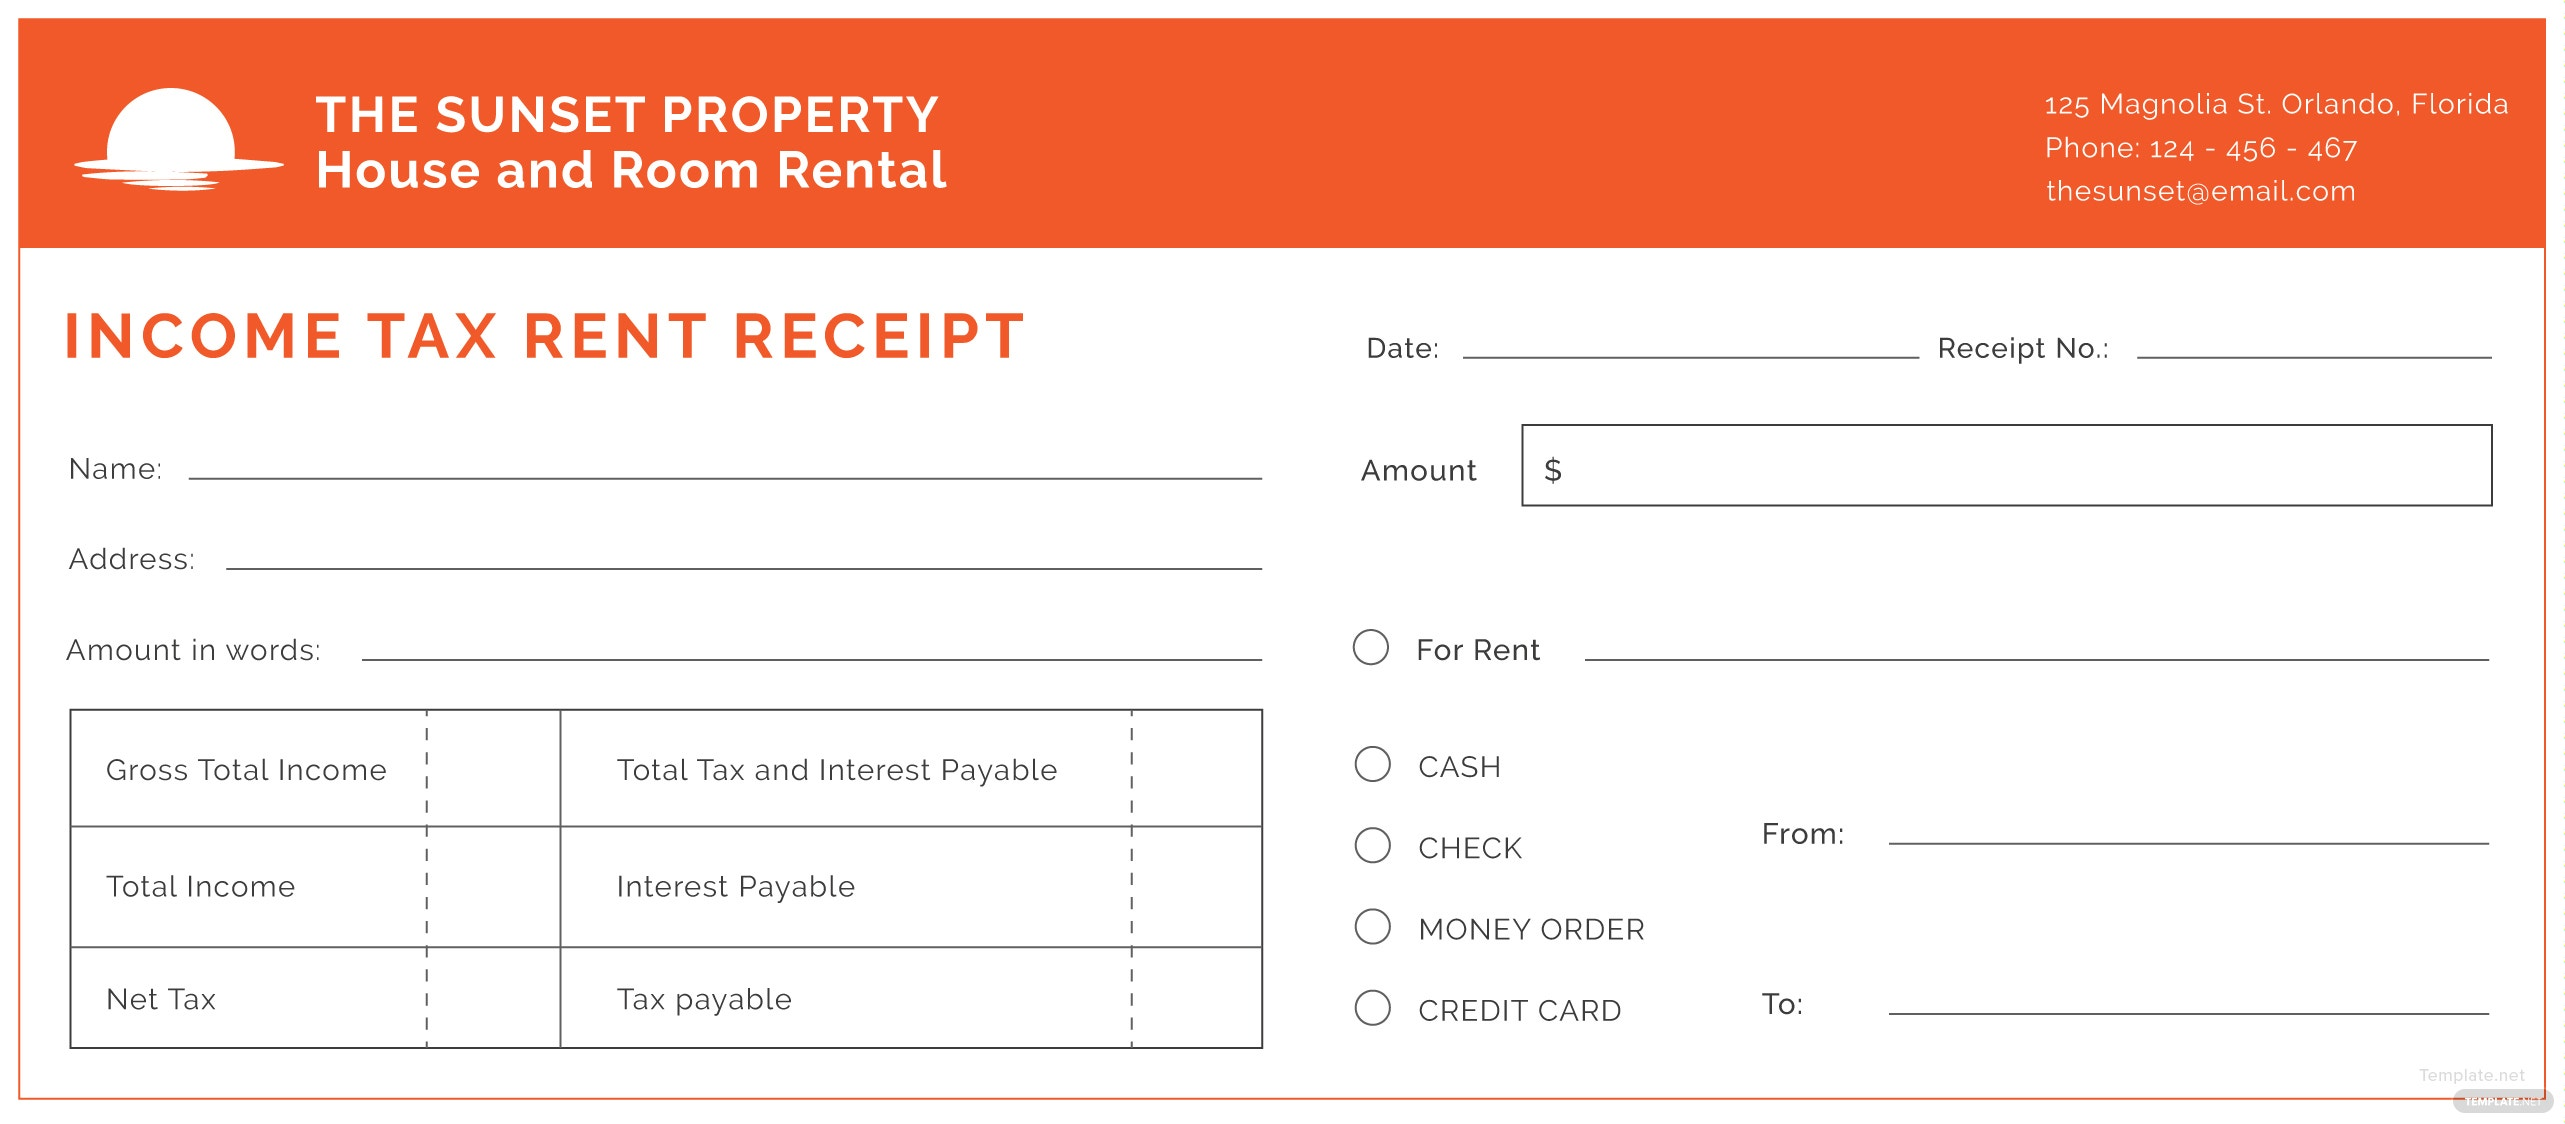 Free Income Tax Rent Receipt Template in Adobe Illustrator ...